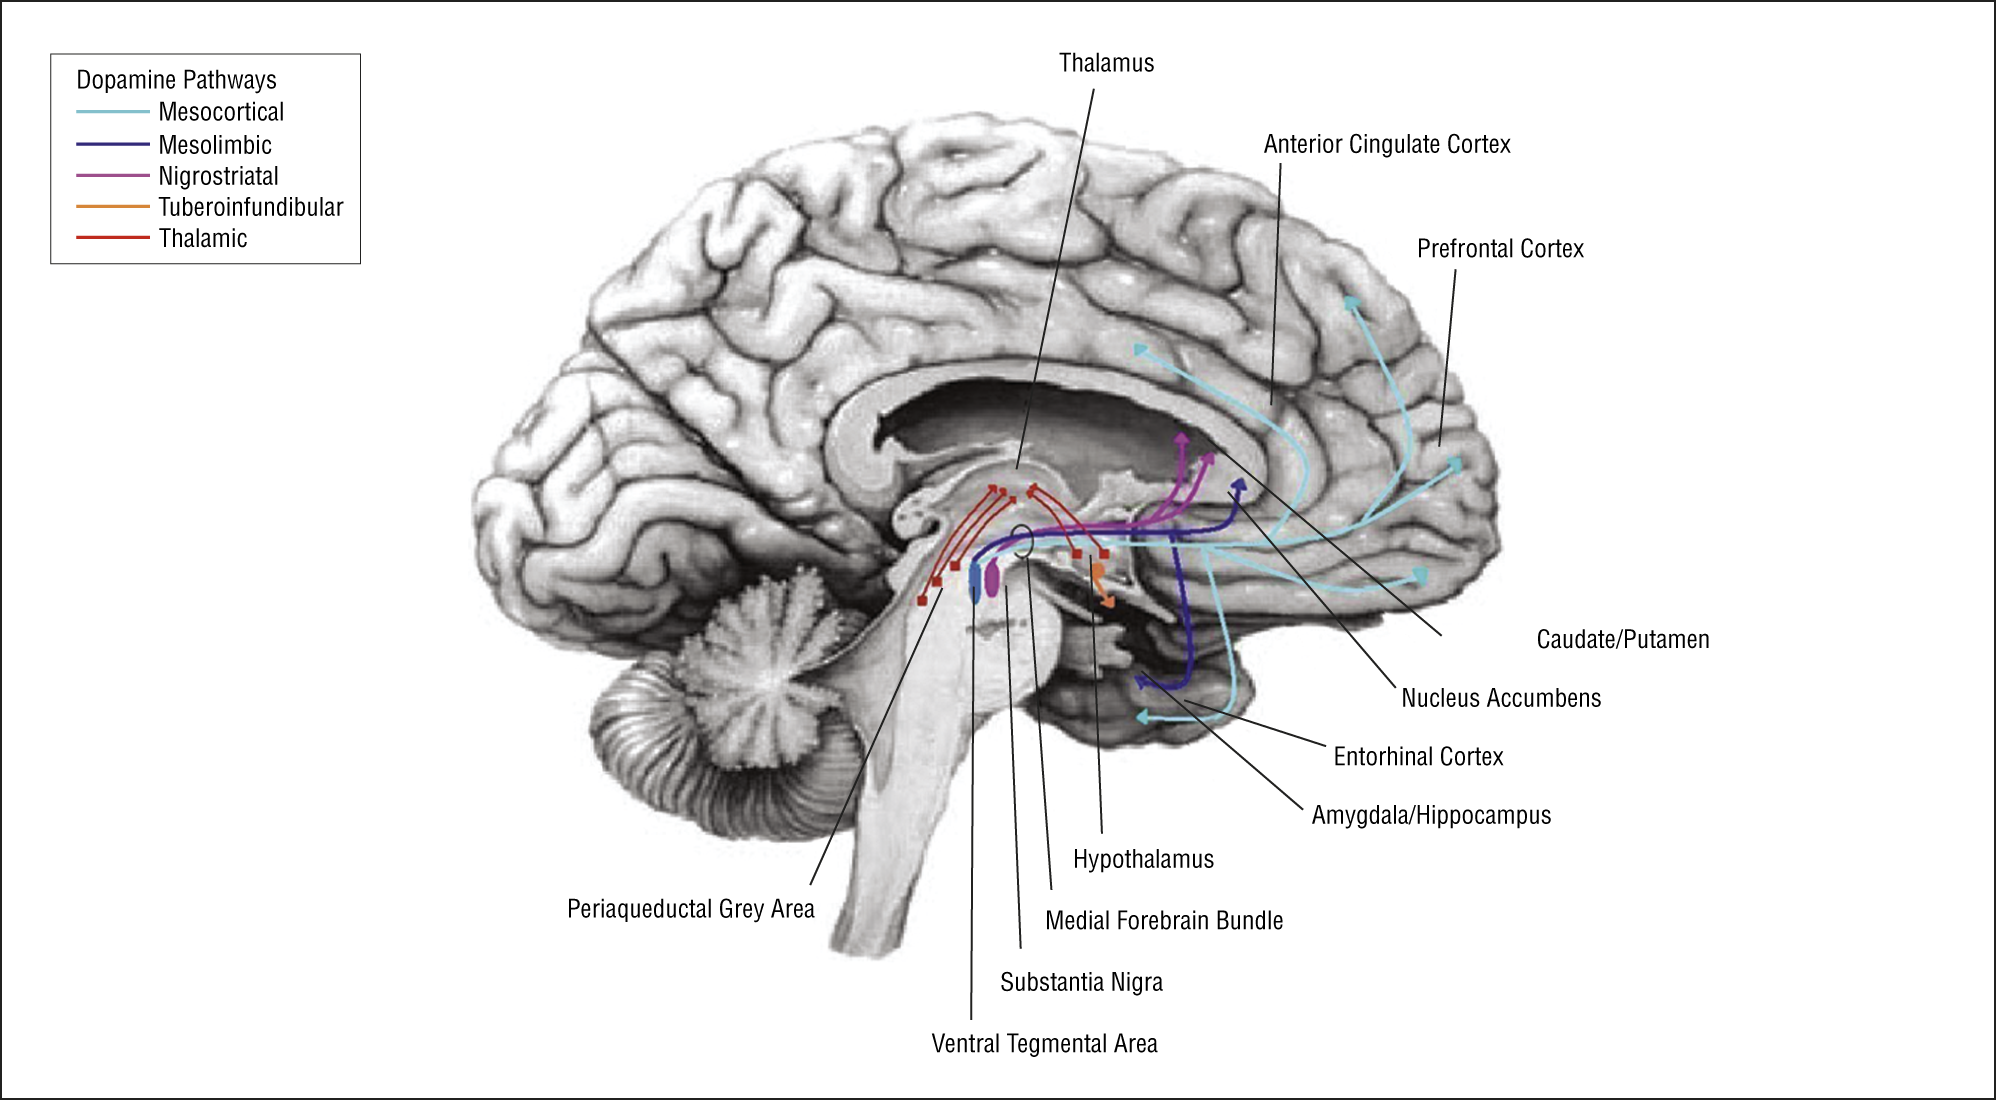 The Role Of Dopamine In The Pathophysiology Of Depression